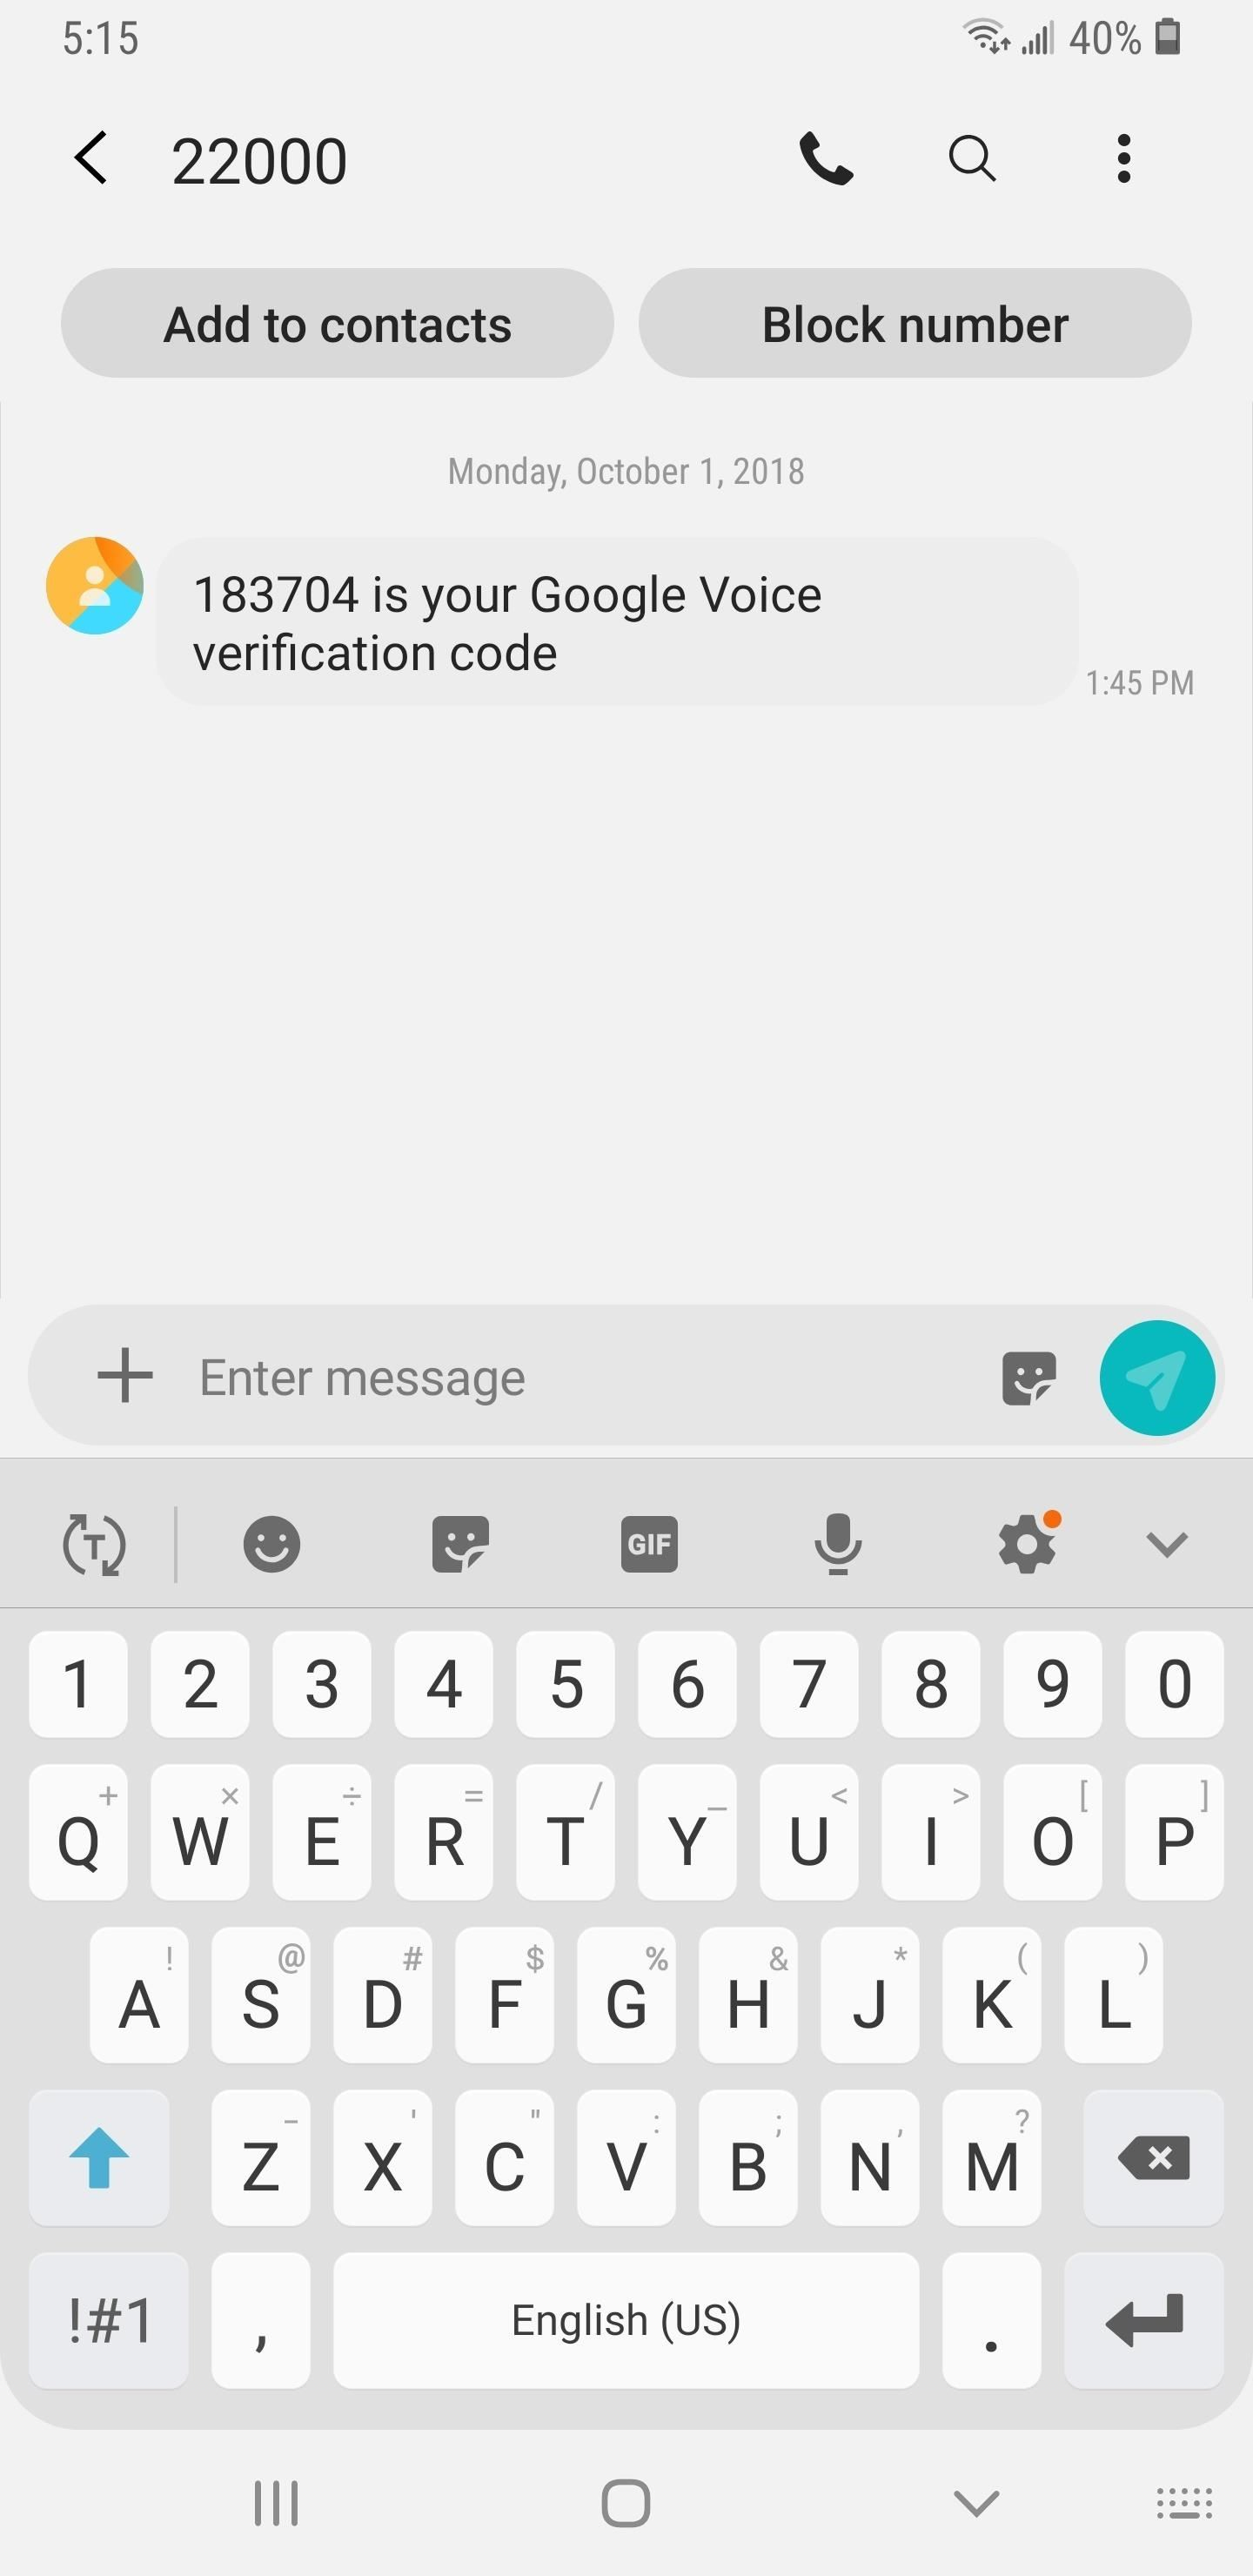 Samsung Android Pie Update: Messages App Gets a Quick Redesign on Galaxy Devices